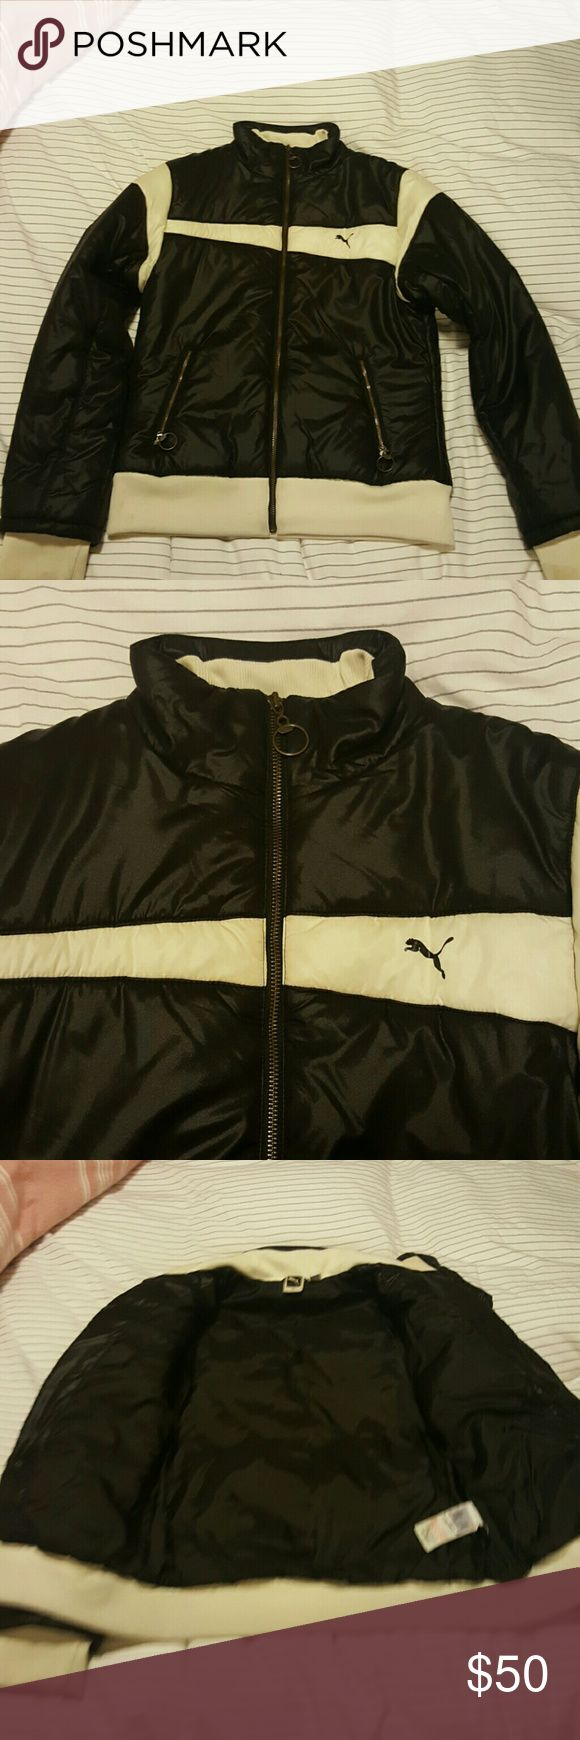 Vintage Puma jacket Super cool original Puma jacket. In good condition, no flaws. Has some filling to keep you warm, and is made of nylon. Fitted jacket Puma Jackets & Coats Puffers